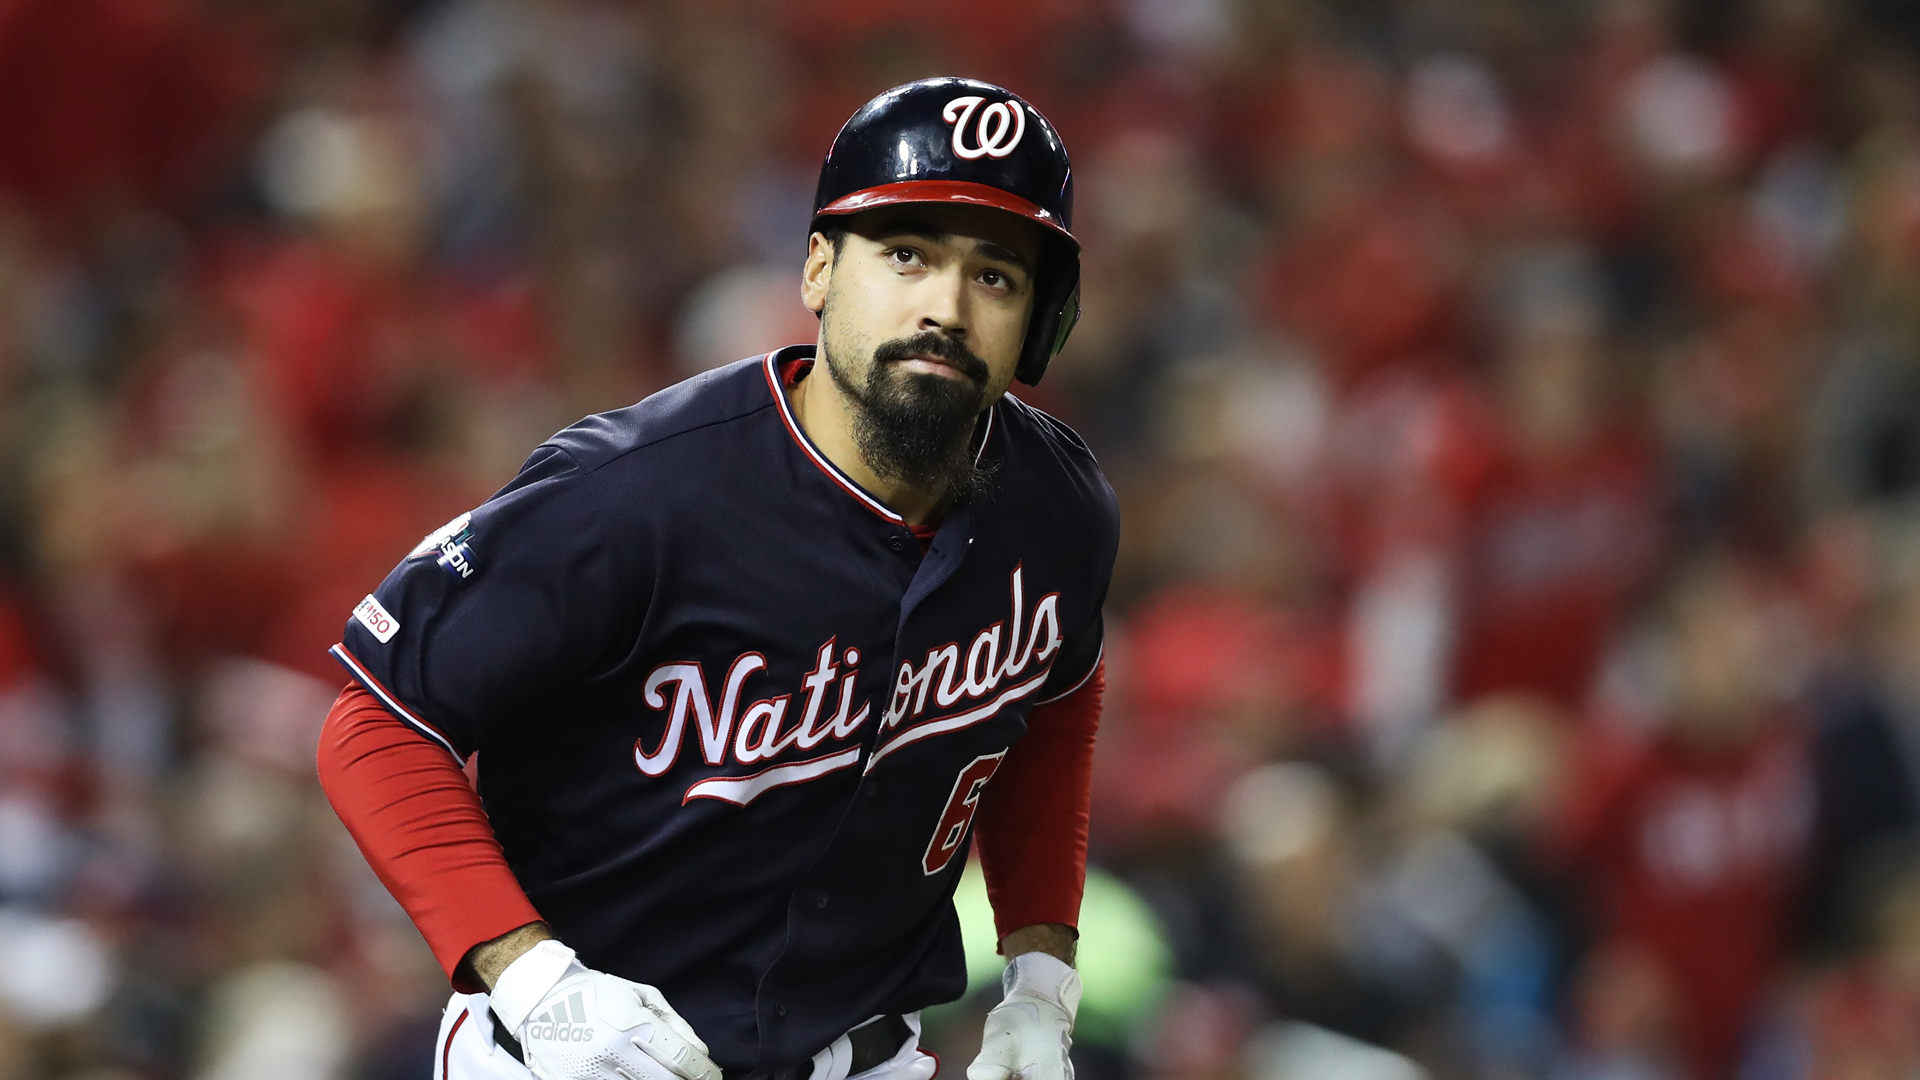 Anthony Rendon of the Washington Nationals reacts as he flies out in the seventh inning against the St. Louis Cardinals during game four of the National League Championship Series at Nationals Park on October 15, 2019 in Washington, DC. (Credit: Rob Carr/Getty Images)